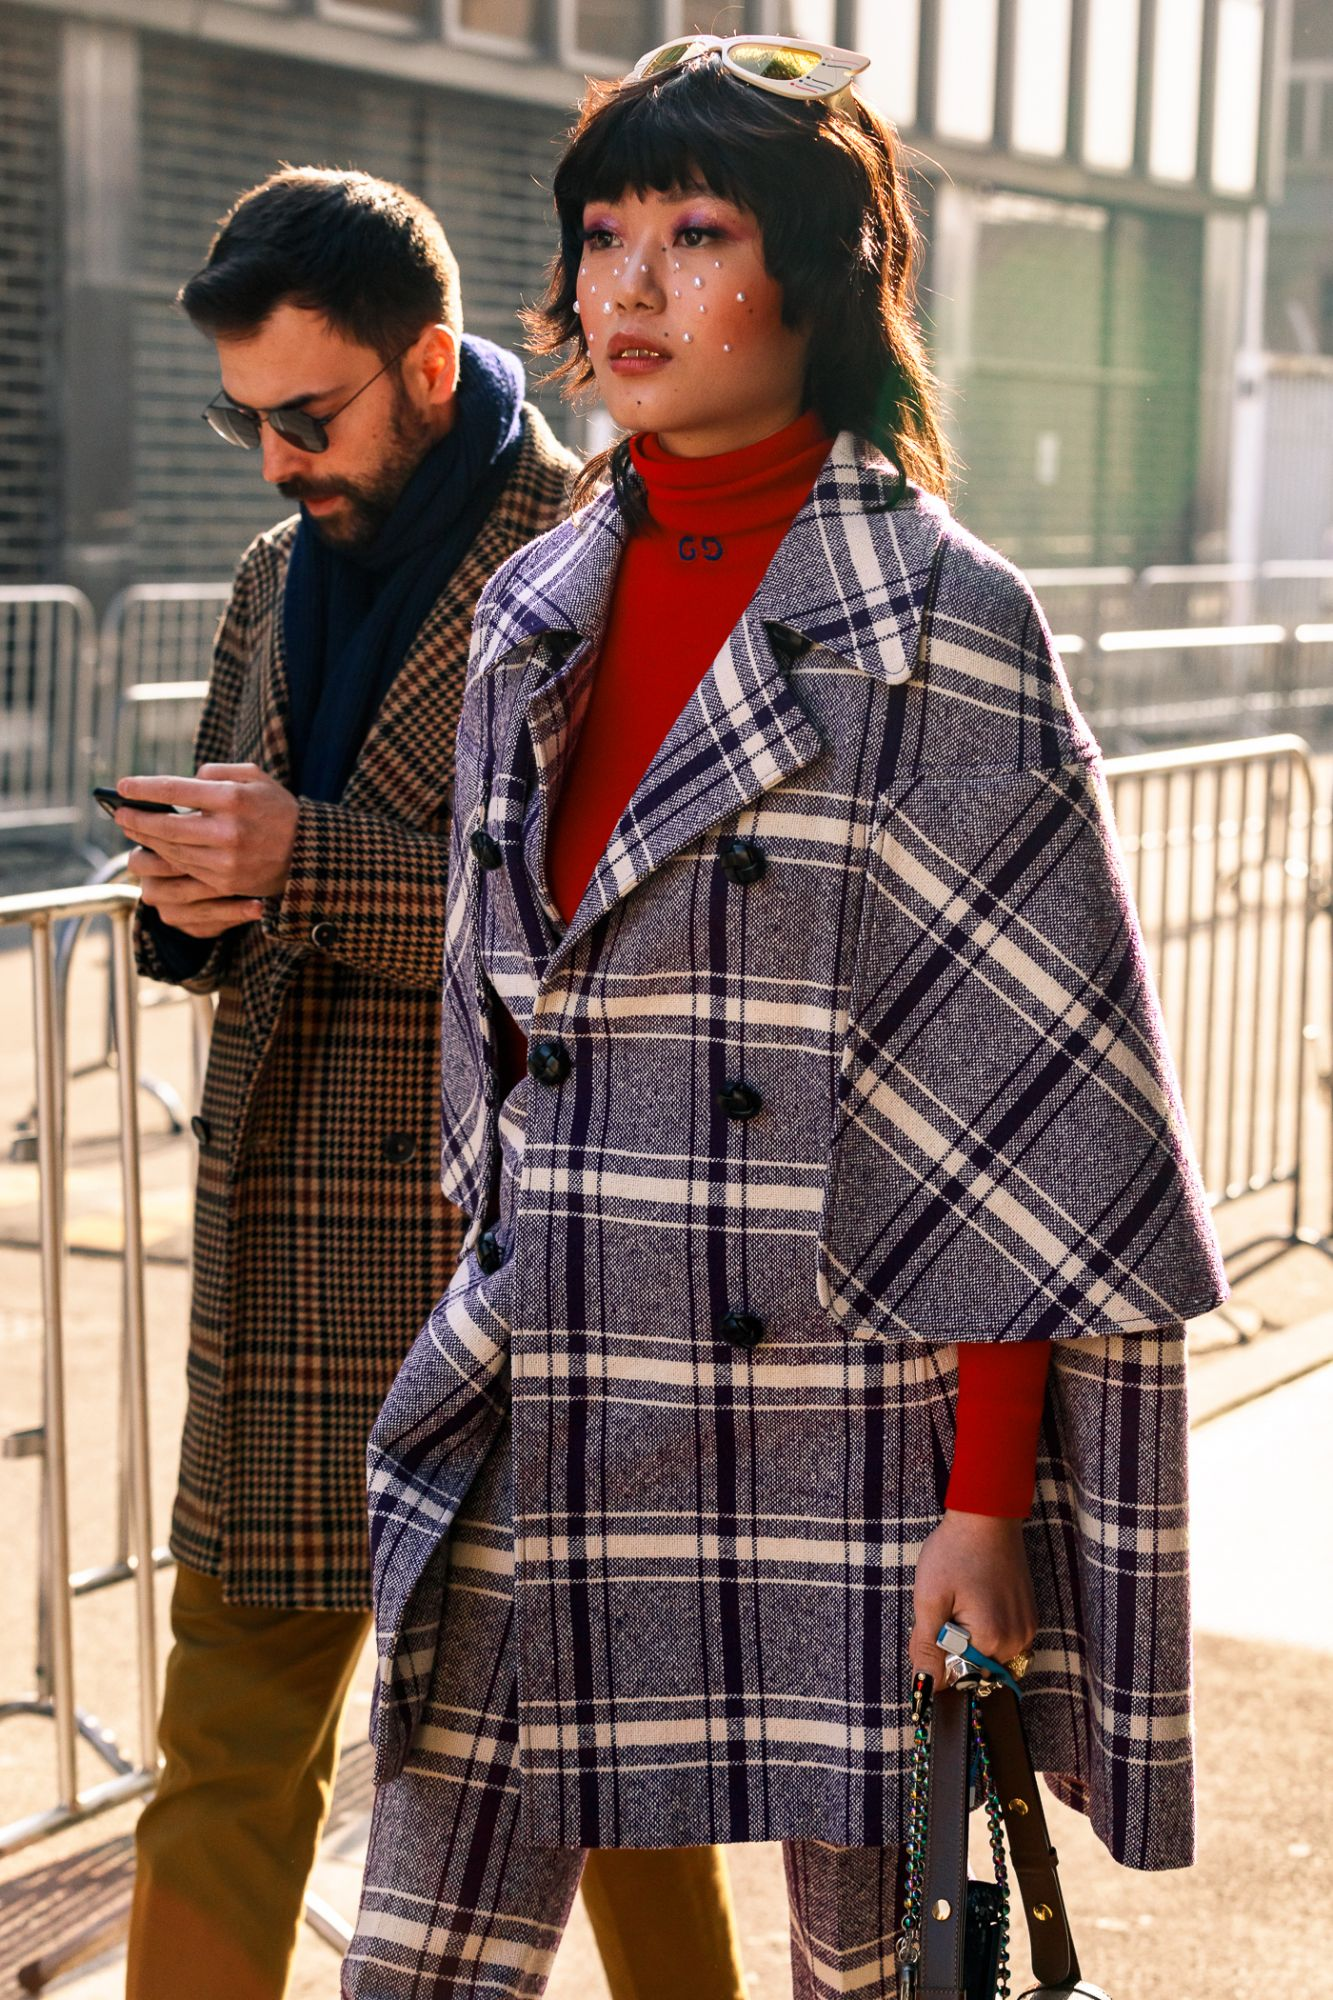 The Best Street Style Looks From Milan Fashion Week Autumn/Winter 2020